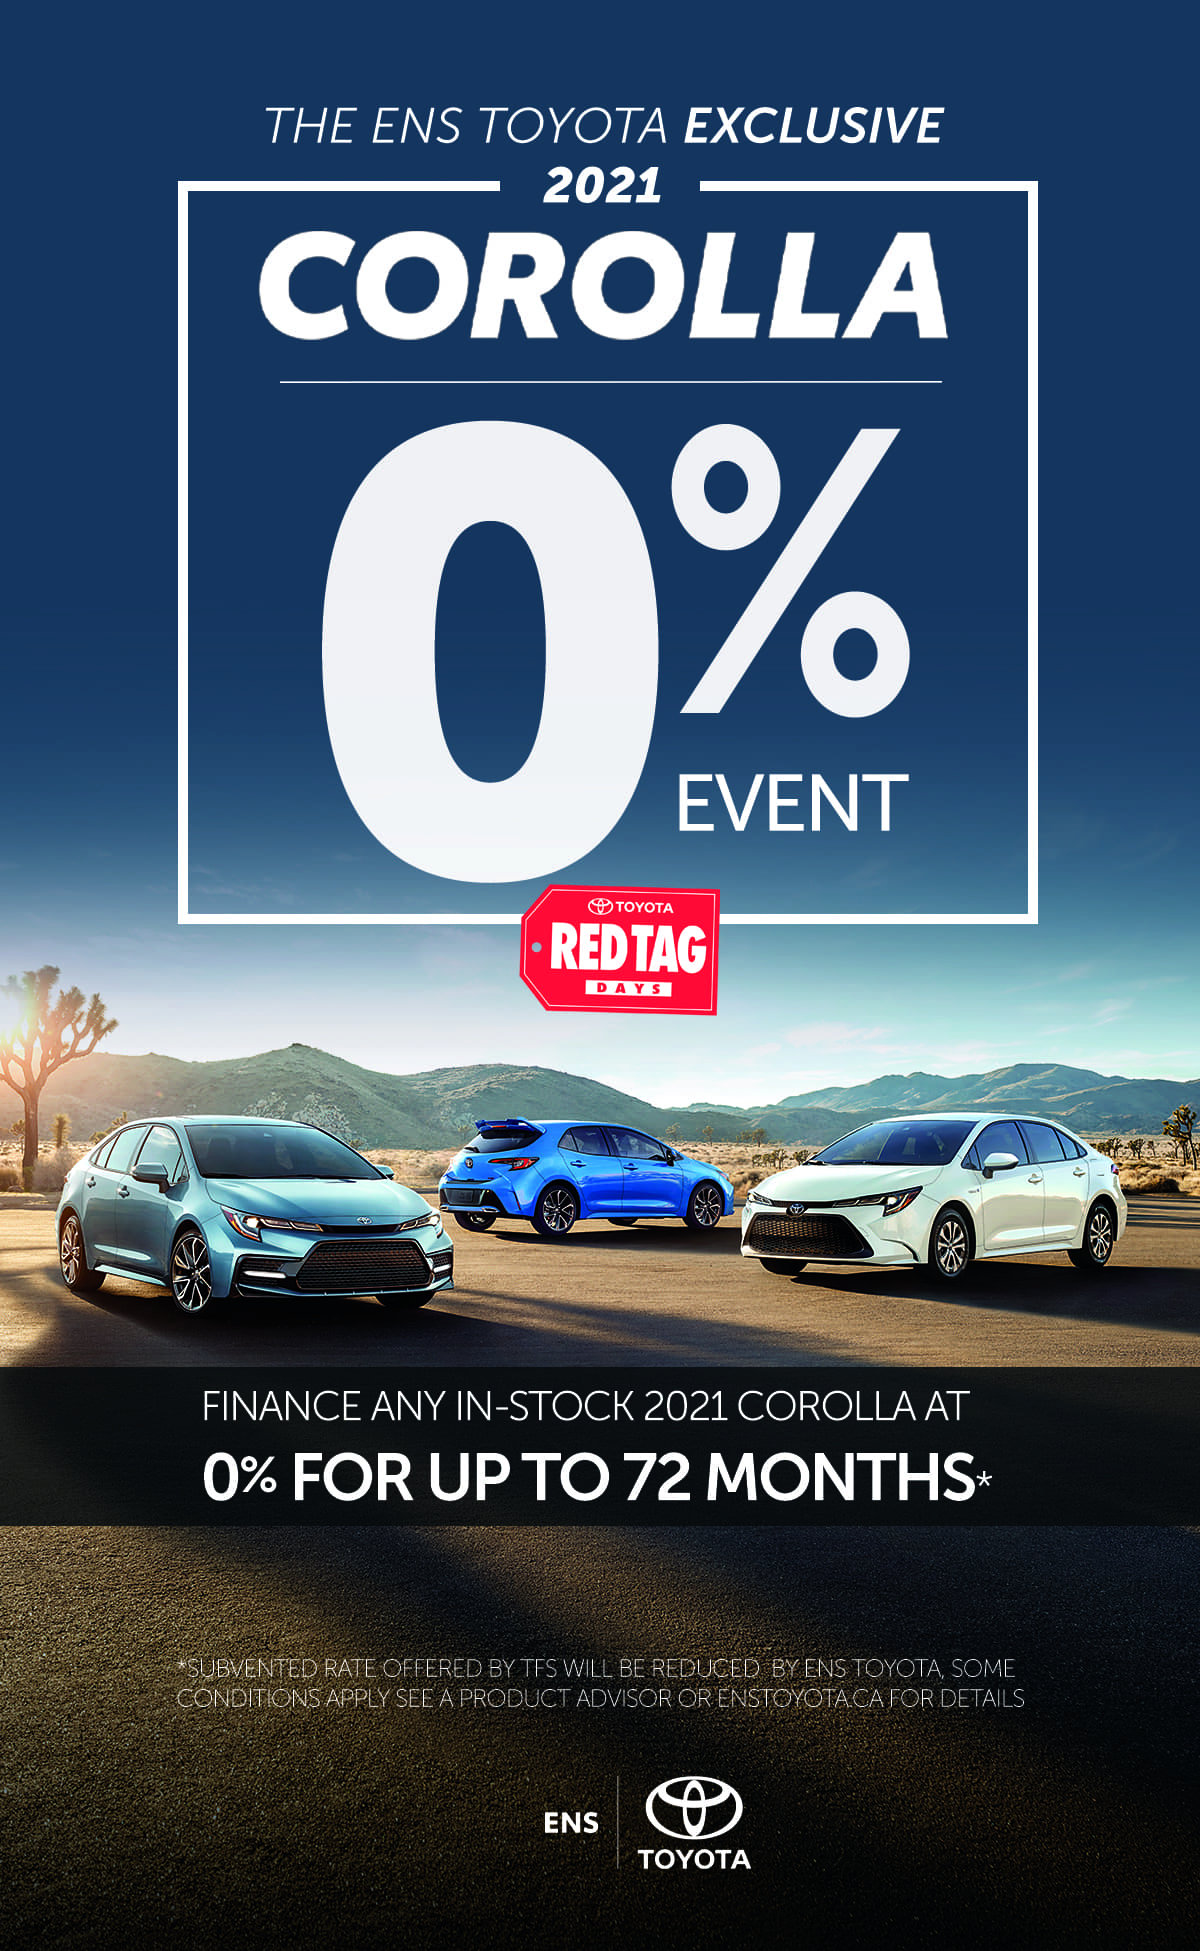 finance a 2021 corolla for 0% for up to 72 months